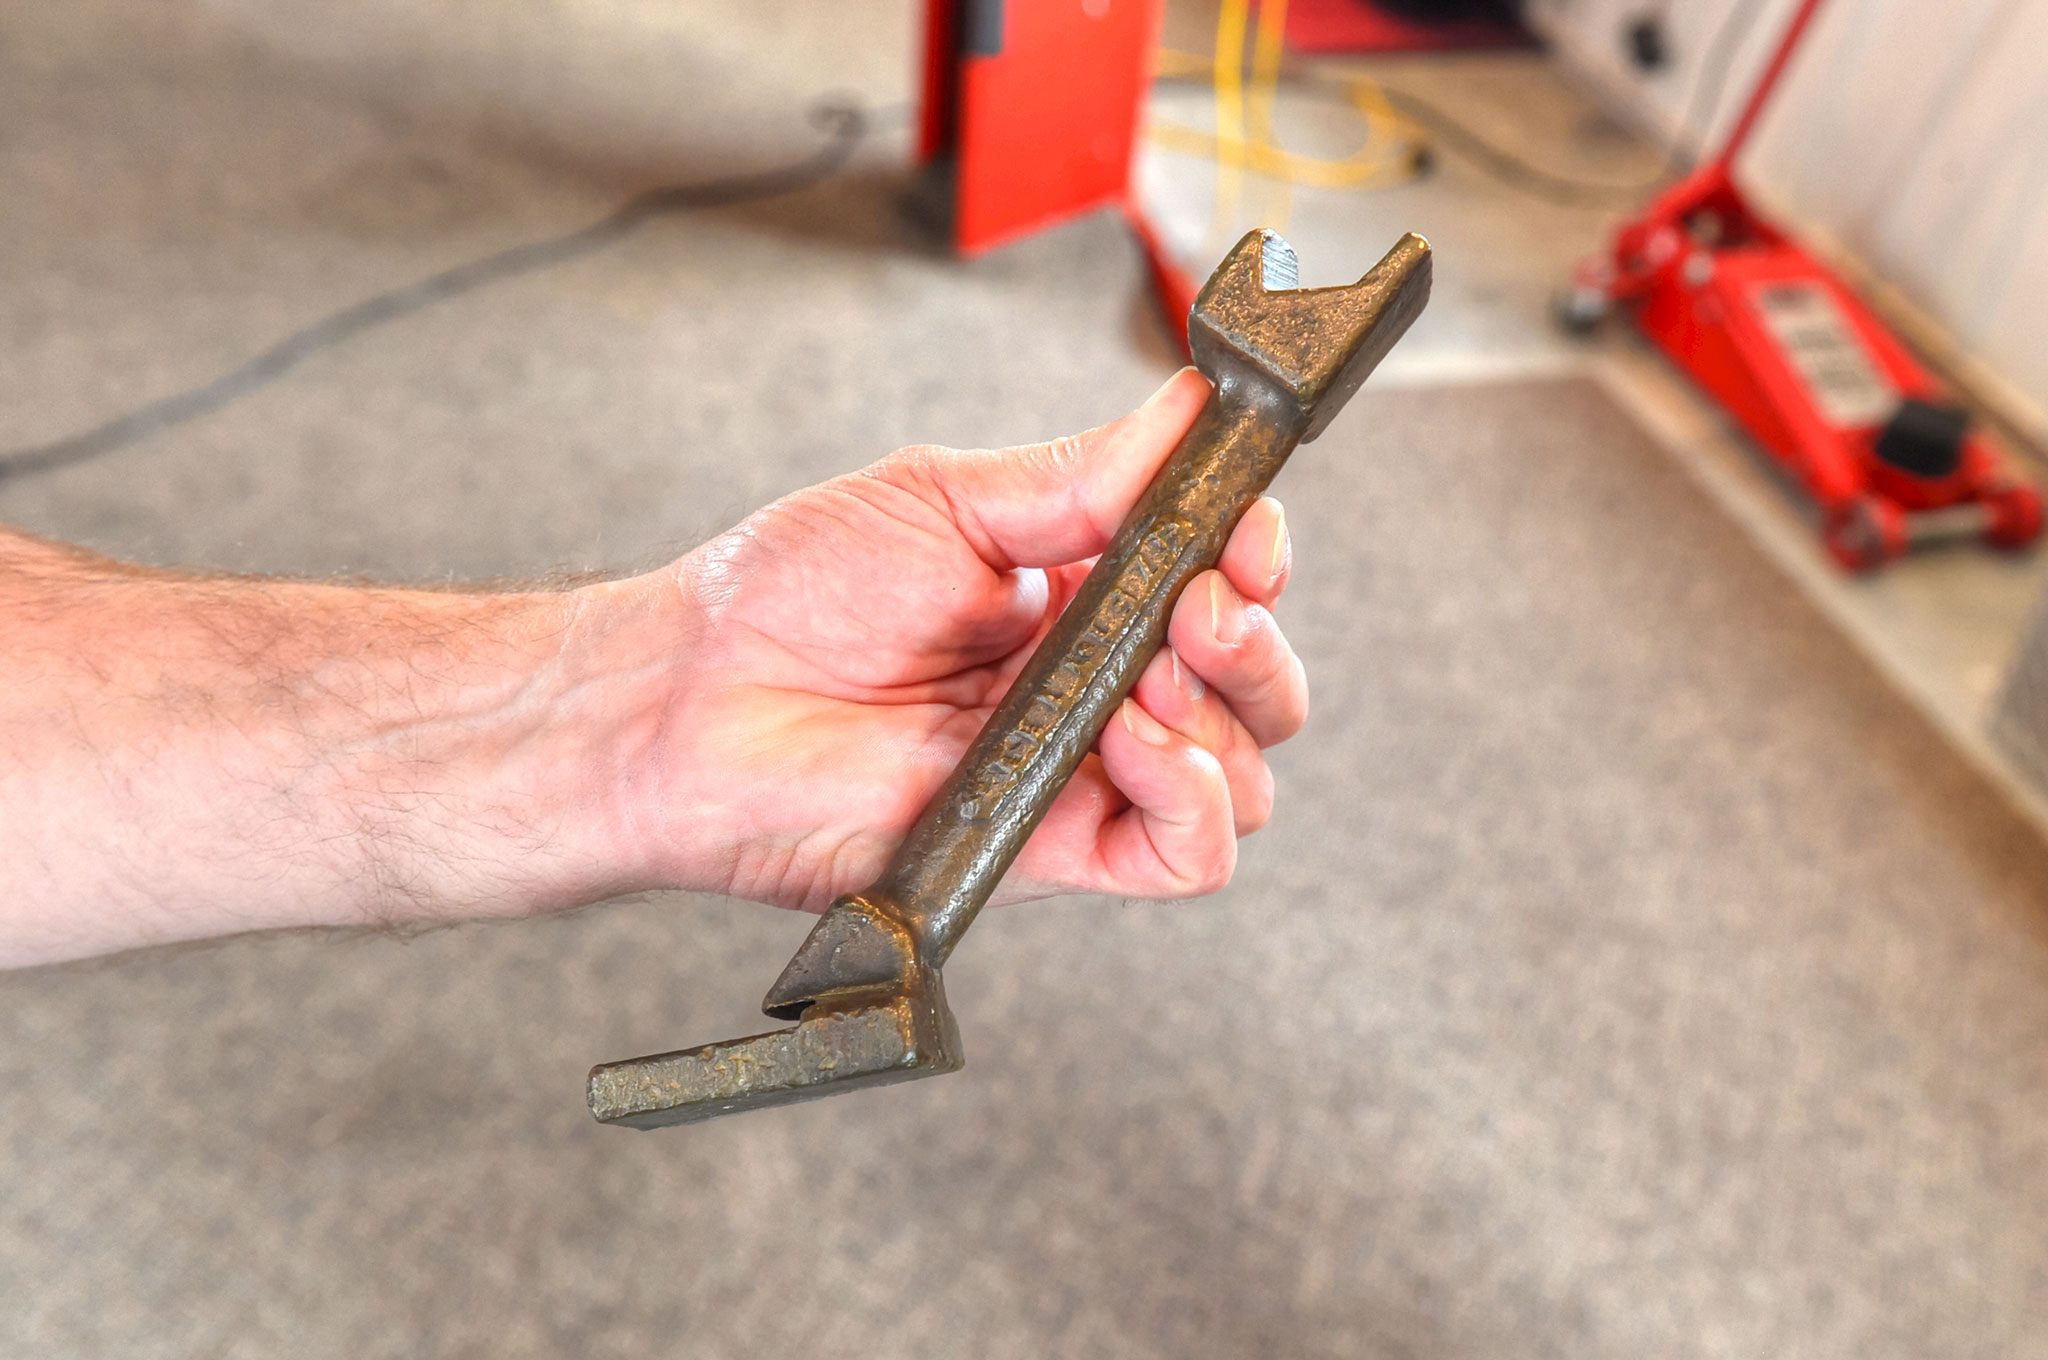 Ford Suspension Support Tool